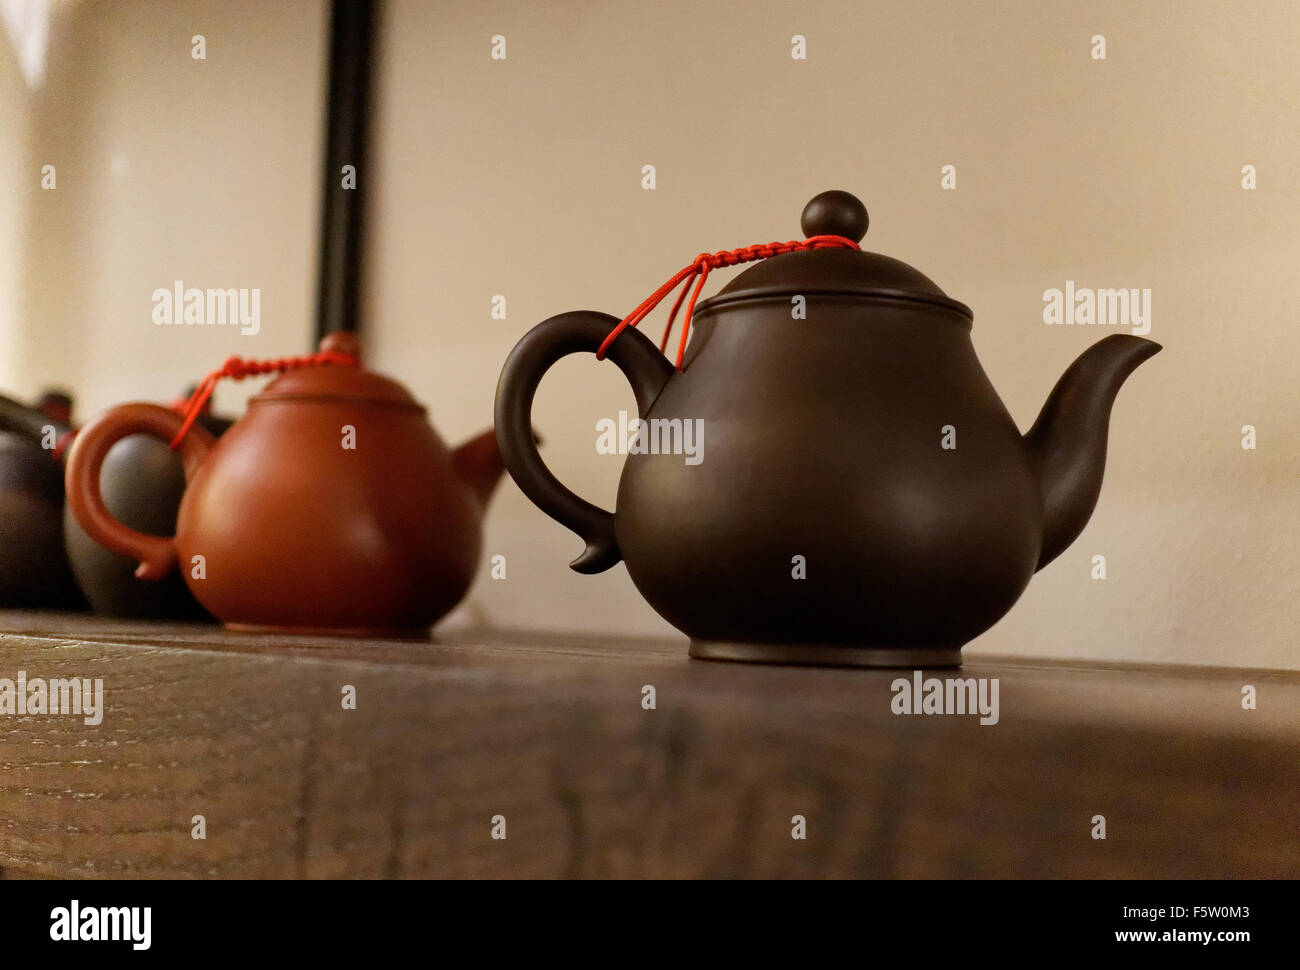 Teapots at Te, a tea shop in Greenwich Village, New York City. - Stock Image